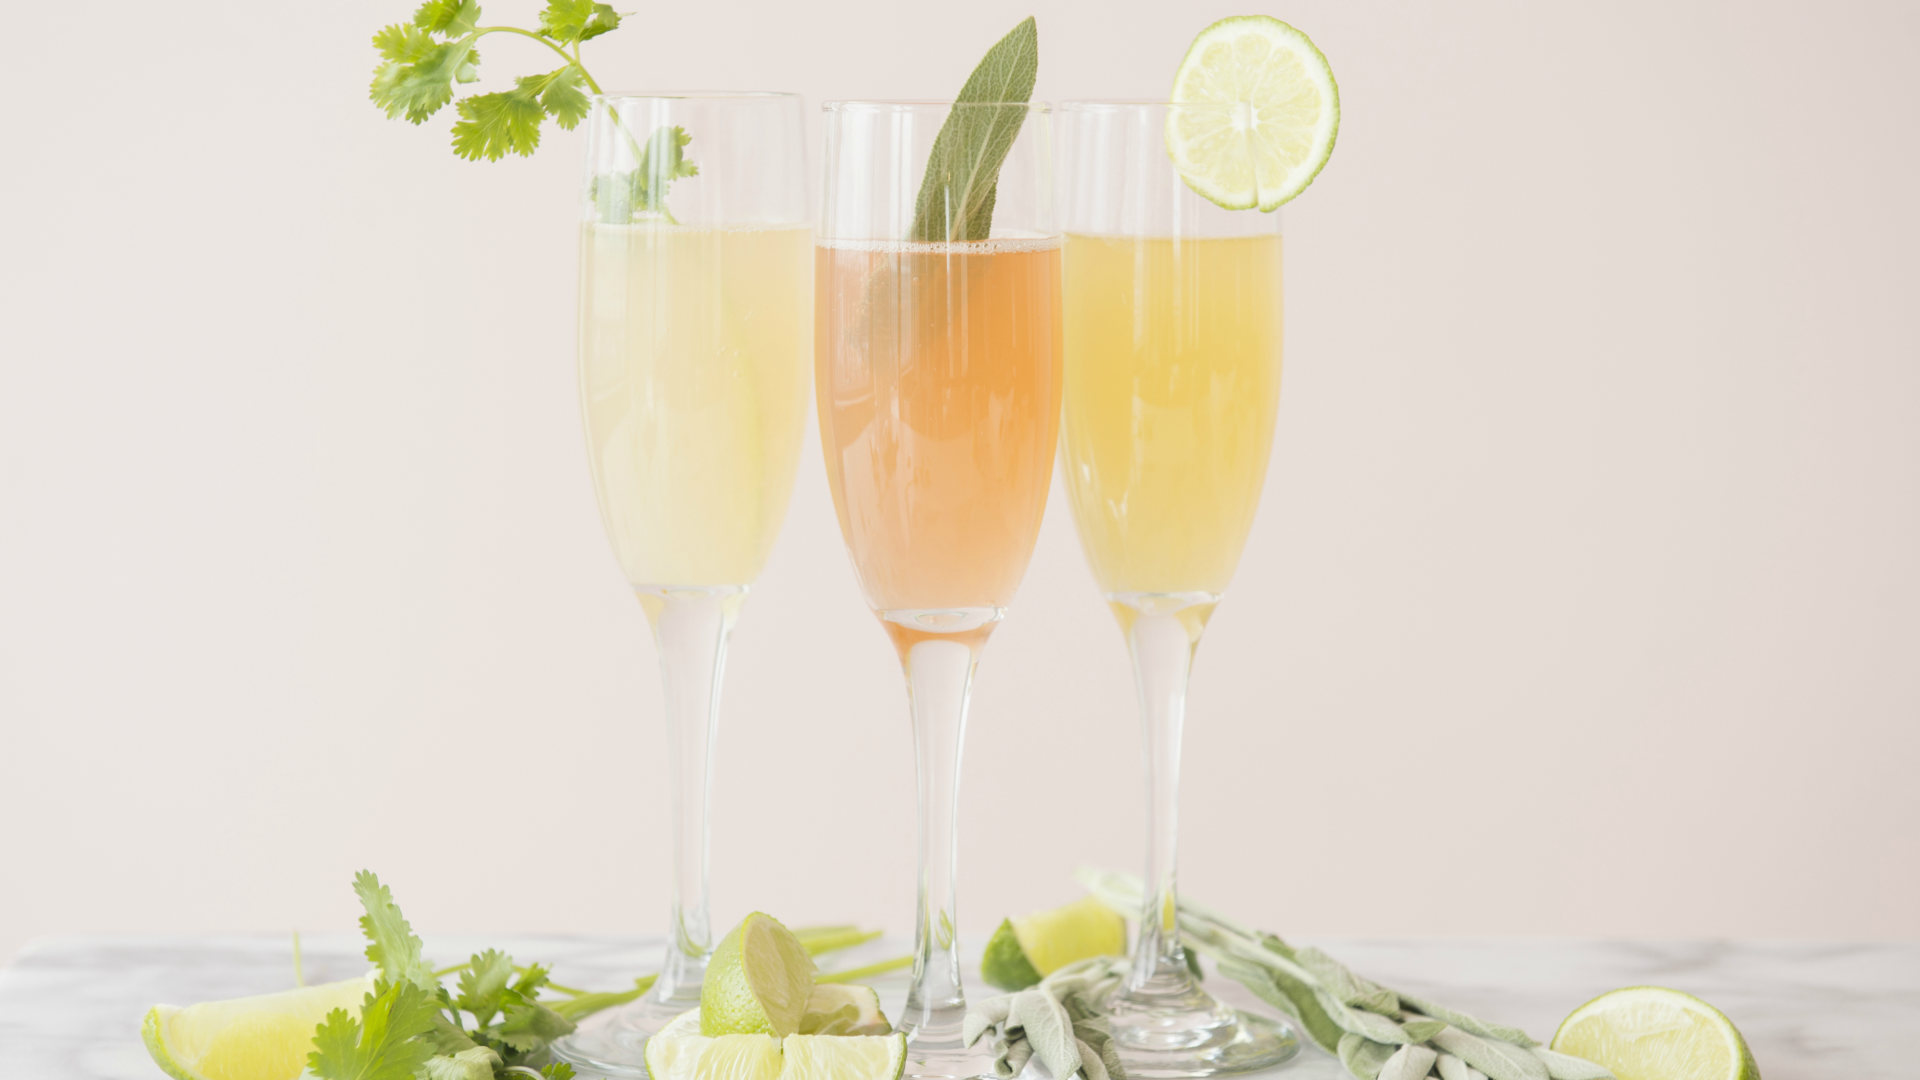 Brunch Mimosa Png - 7 Mimosa Recipes Perfect for Brunch (or Any Time)   StyleCaster